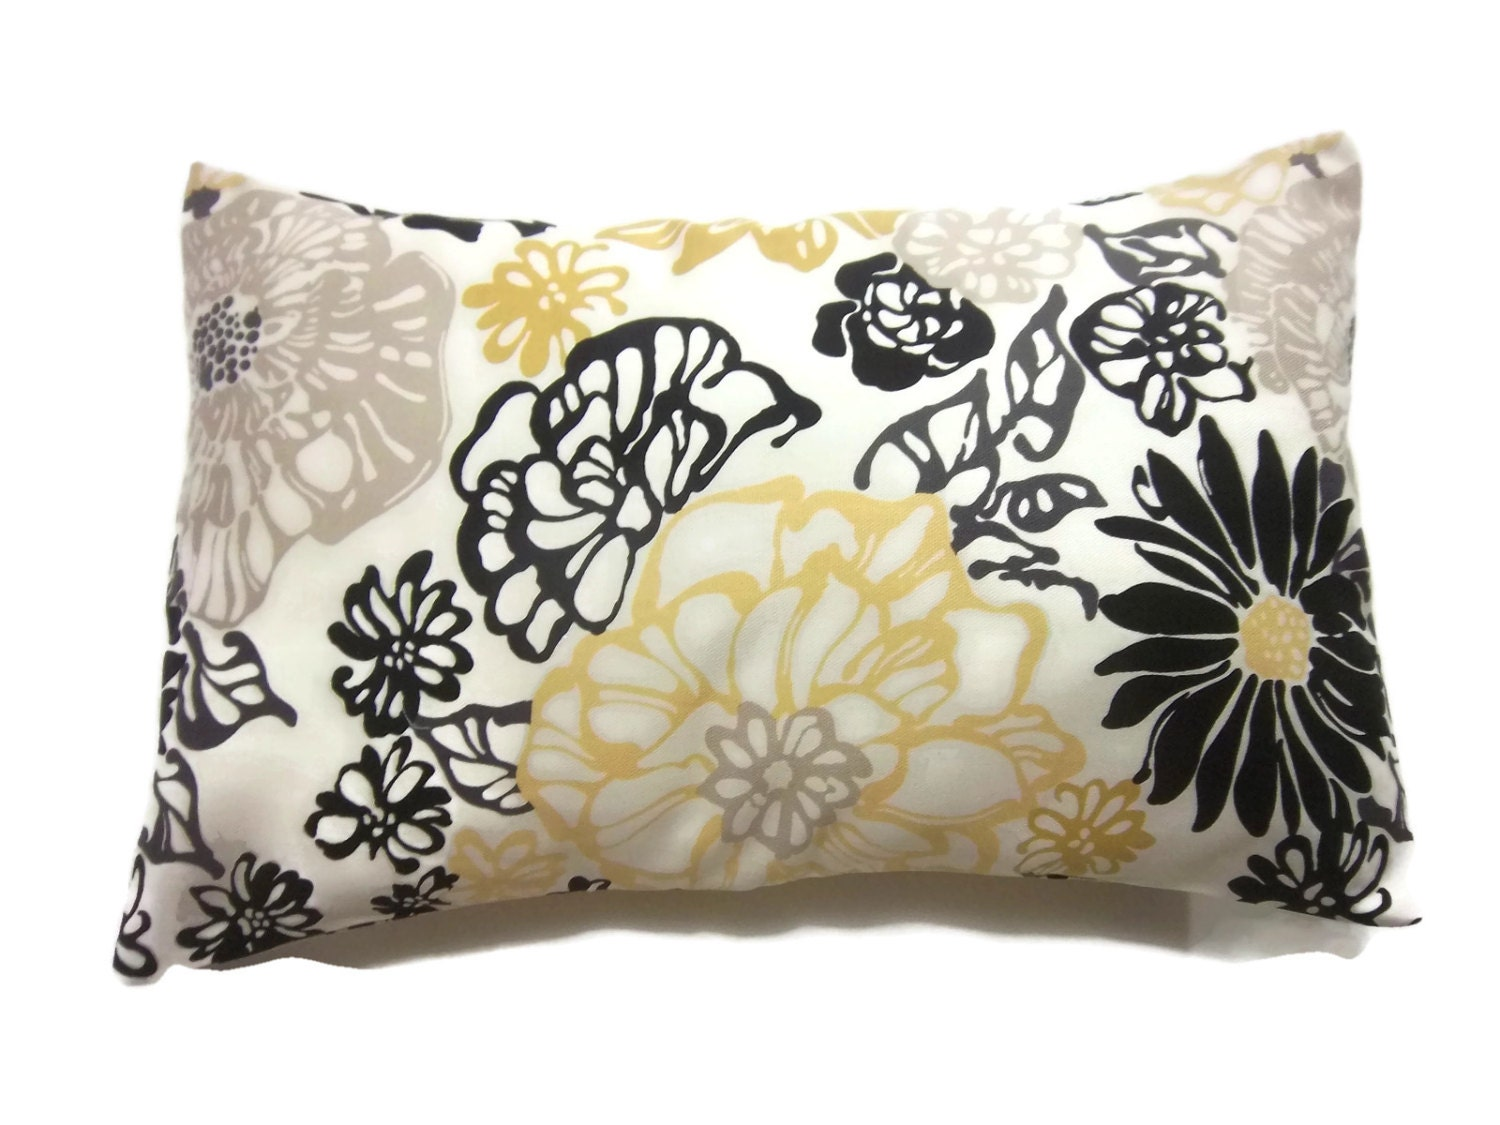 Decorative Black Lumbar Pillow : Decorative Pillow Cover Lumbar Floral Yellow White Black Taupe